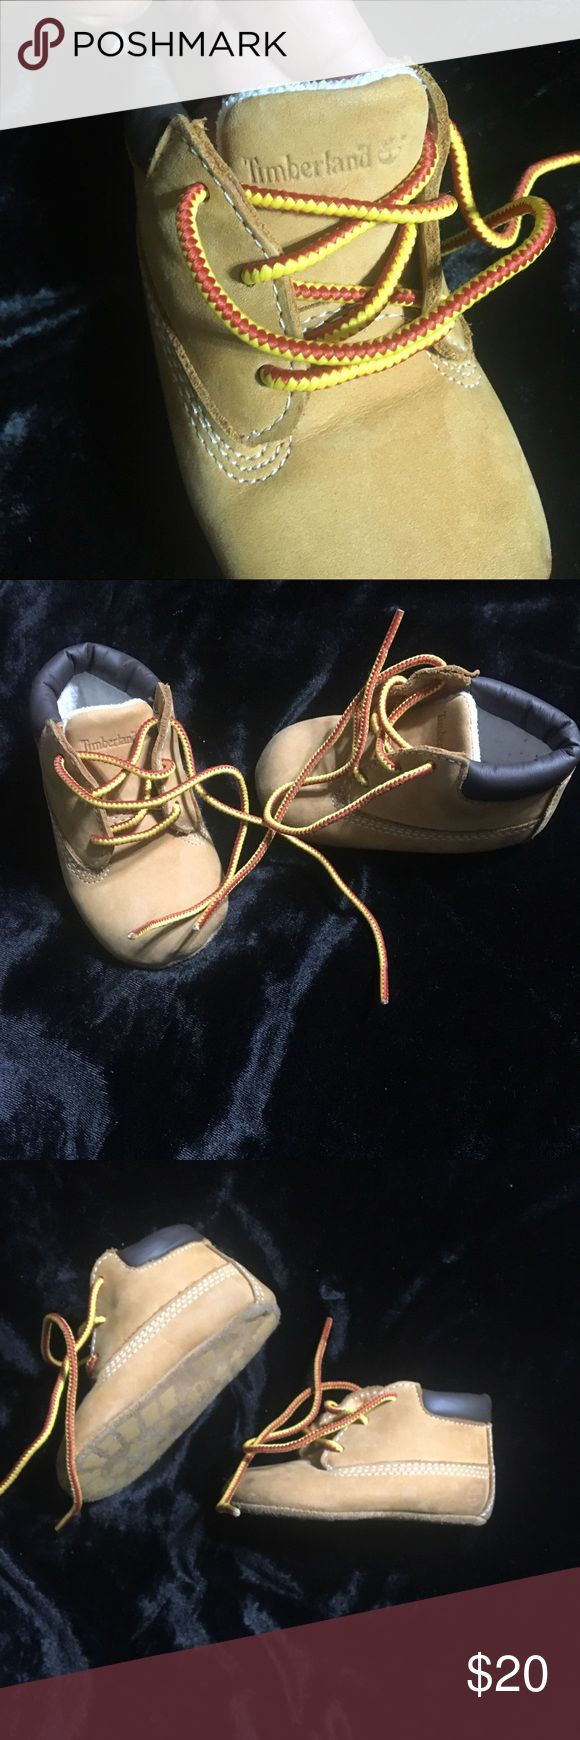 Infant timberland boots Size 3c, good condition. Shoes Boots